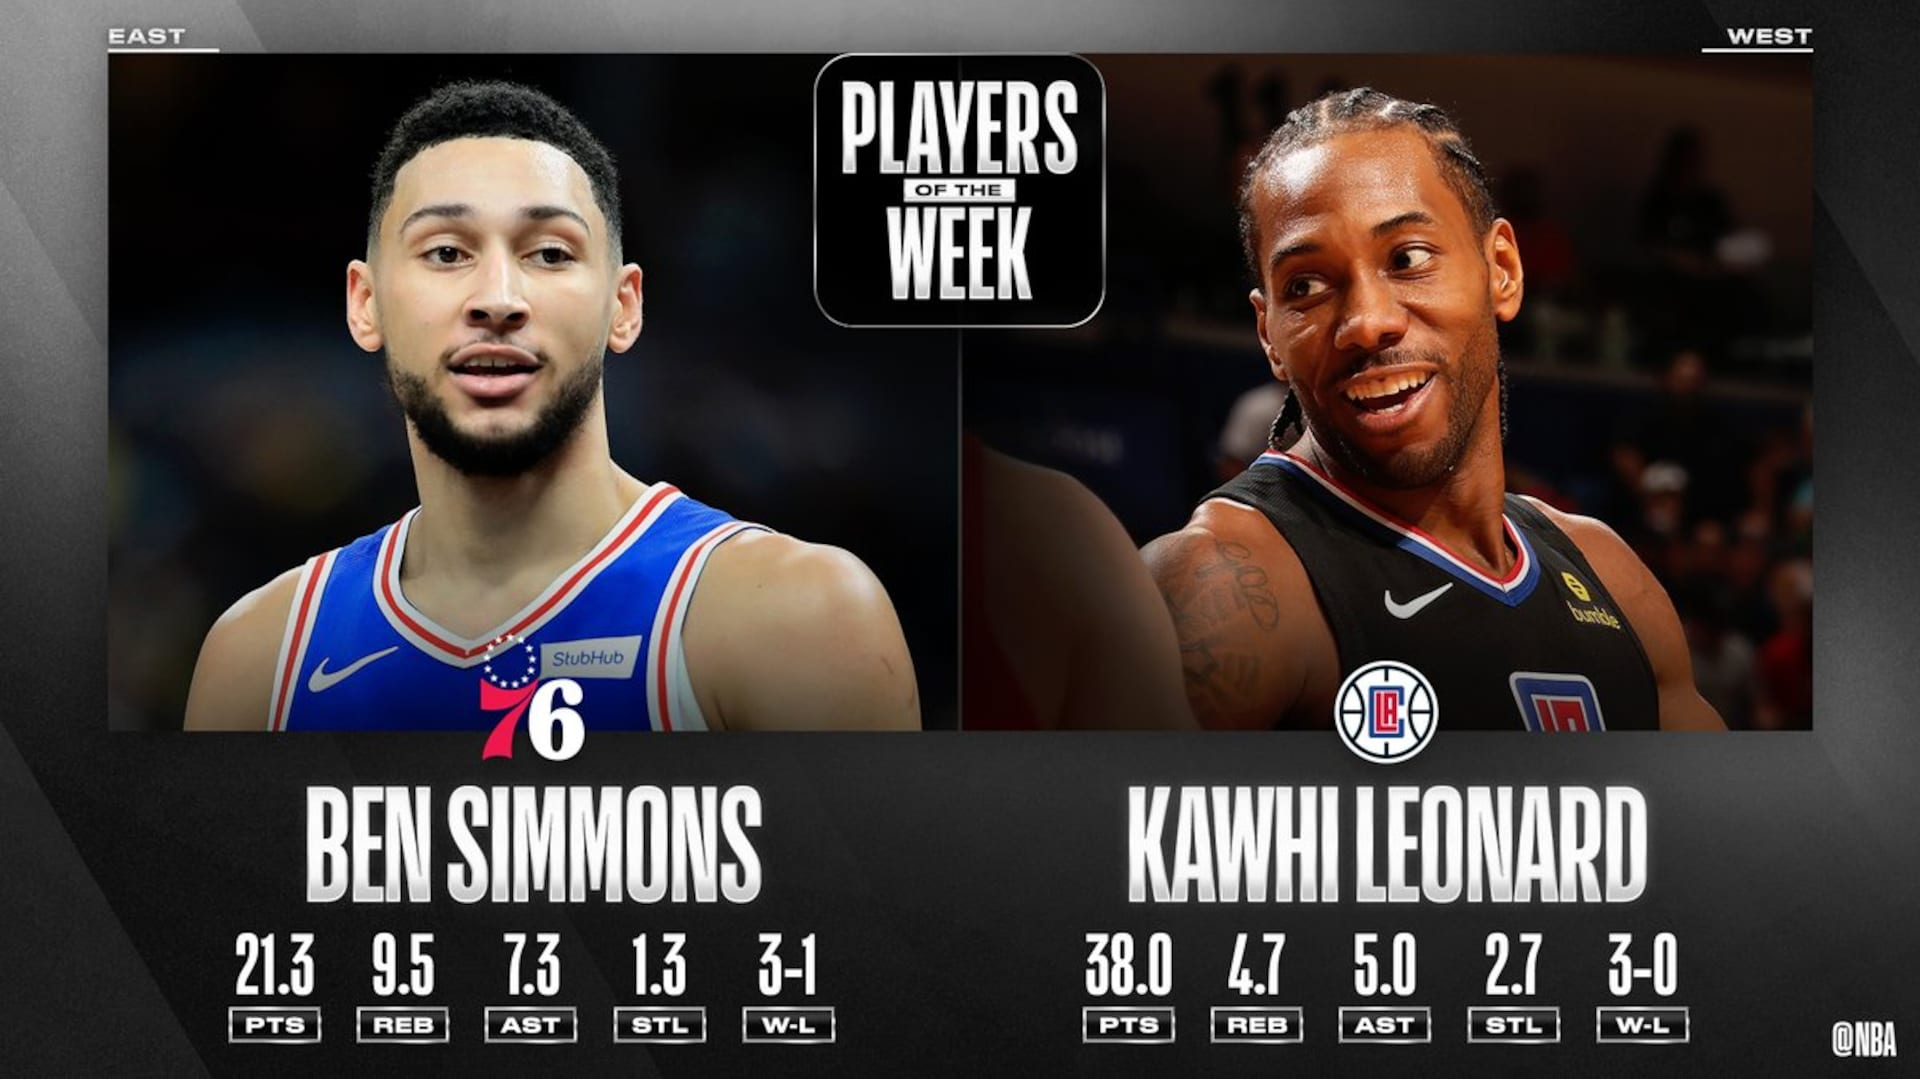 Ben Simmons, Kawhi Leonard named NBA Players of the Week